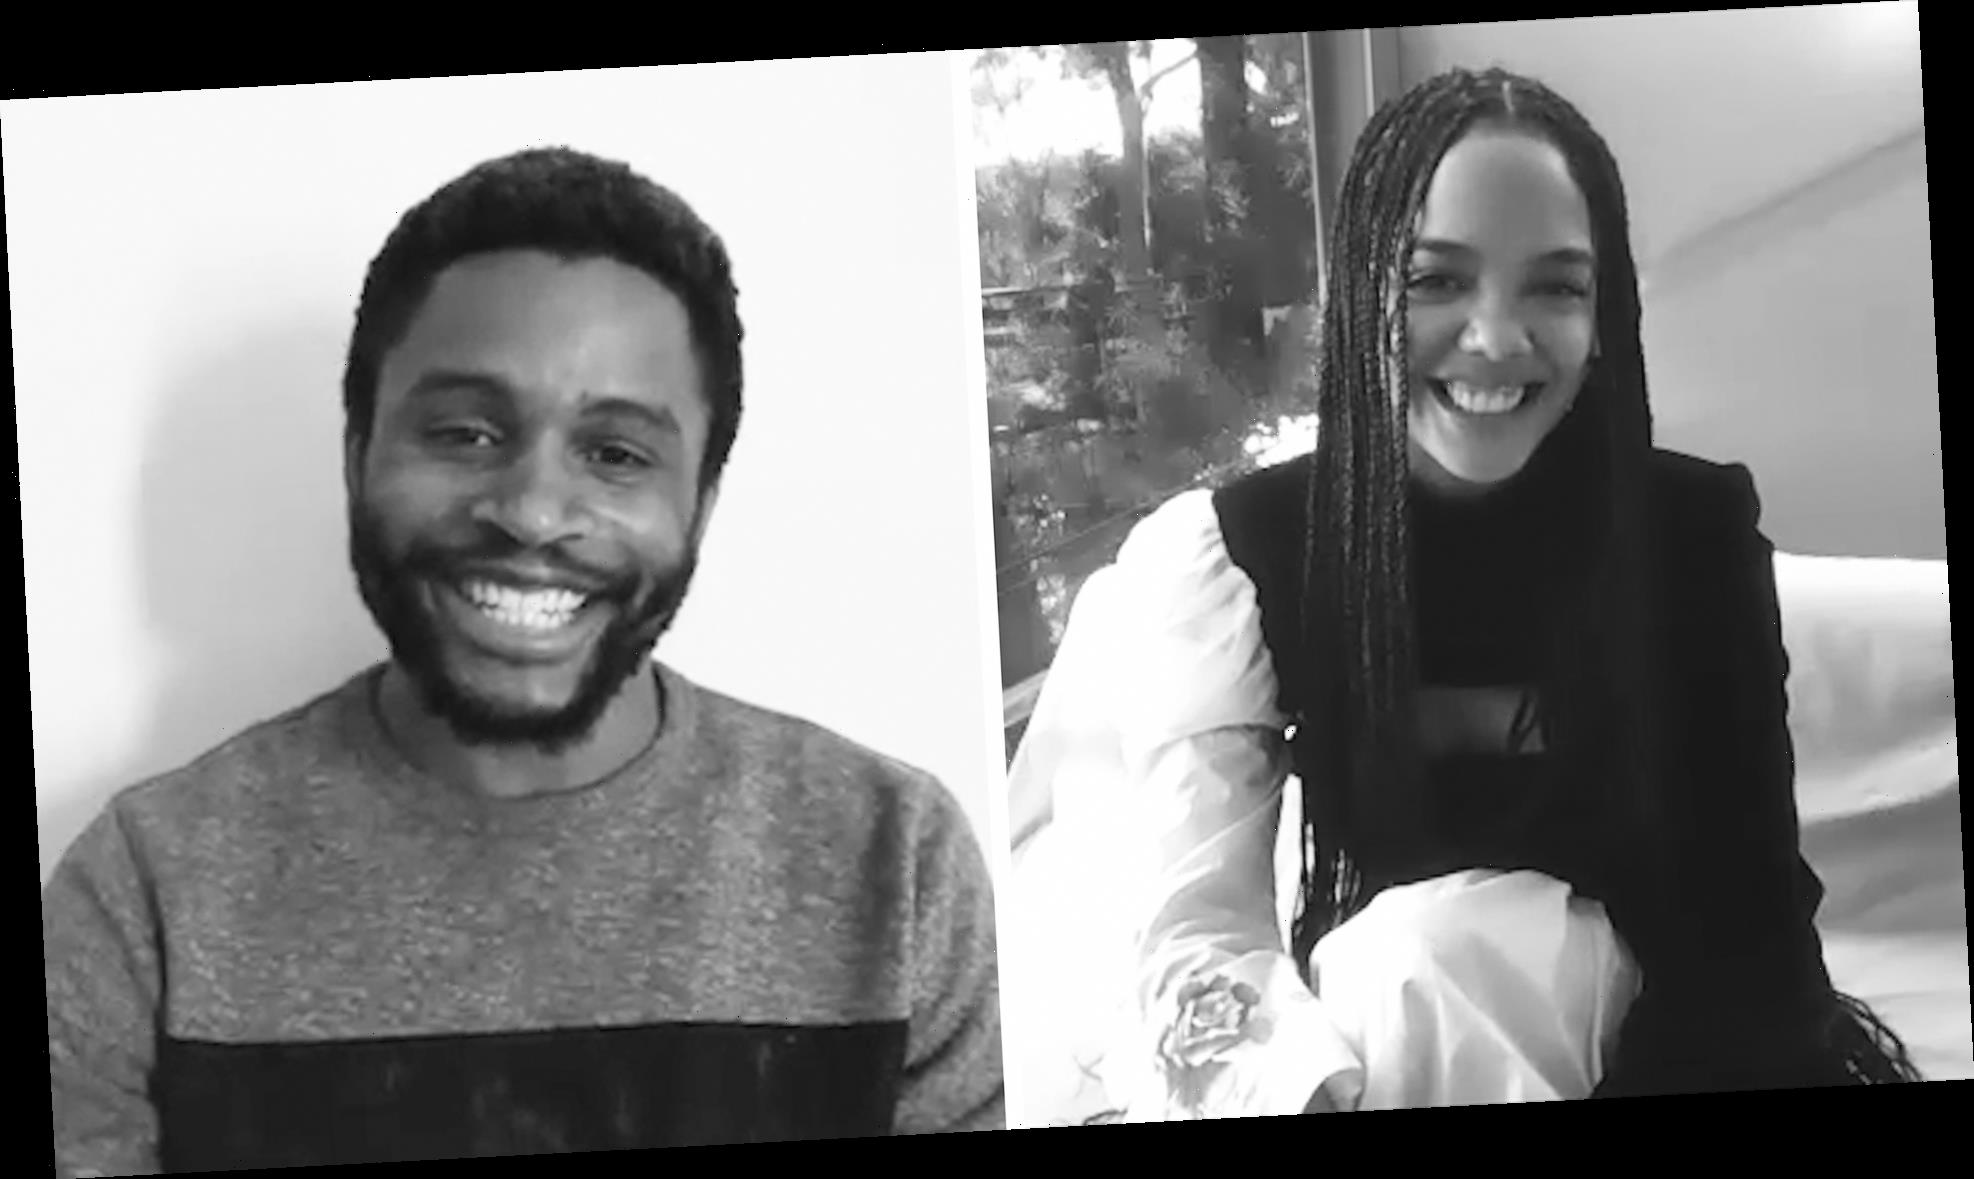 'The First Time' With Tessa Thompson and Nnamdi Asomugha